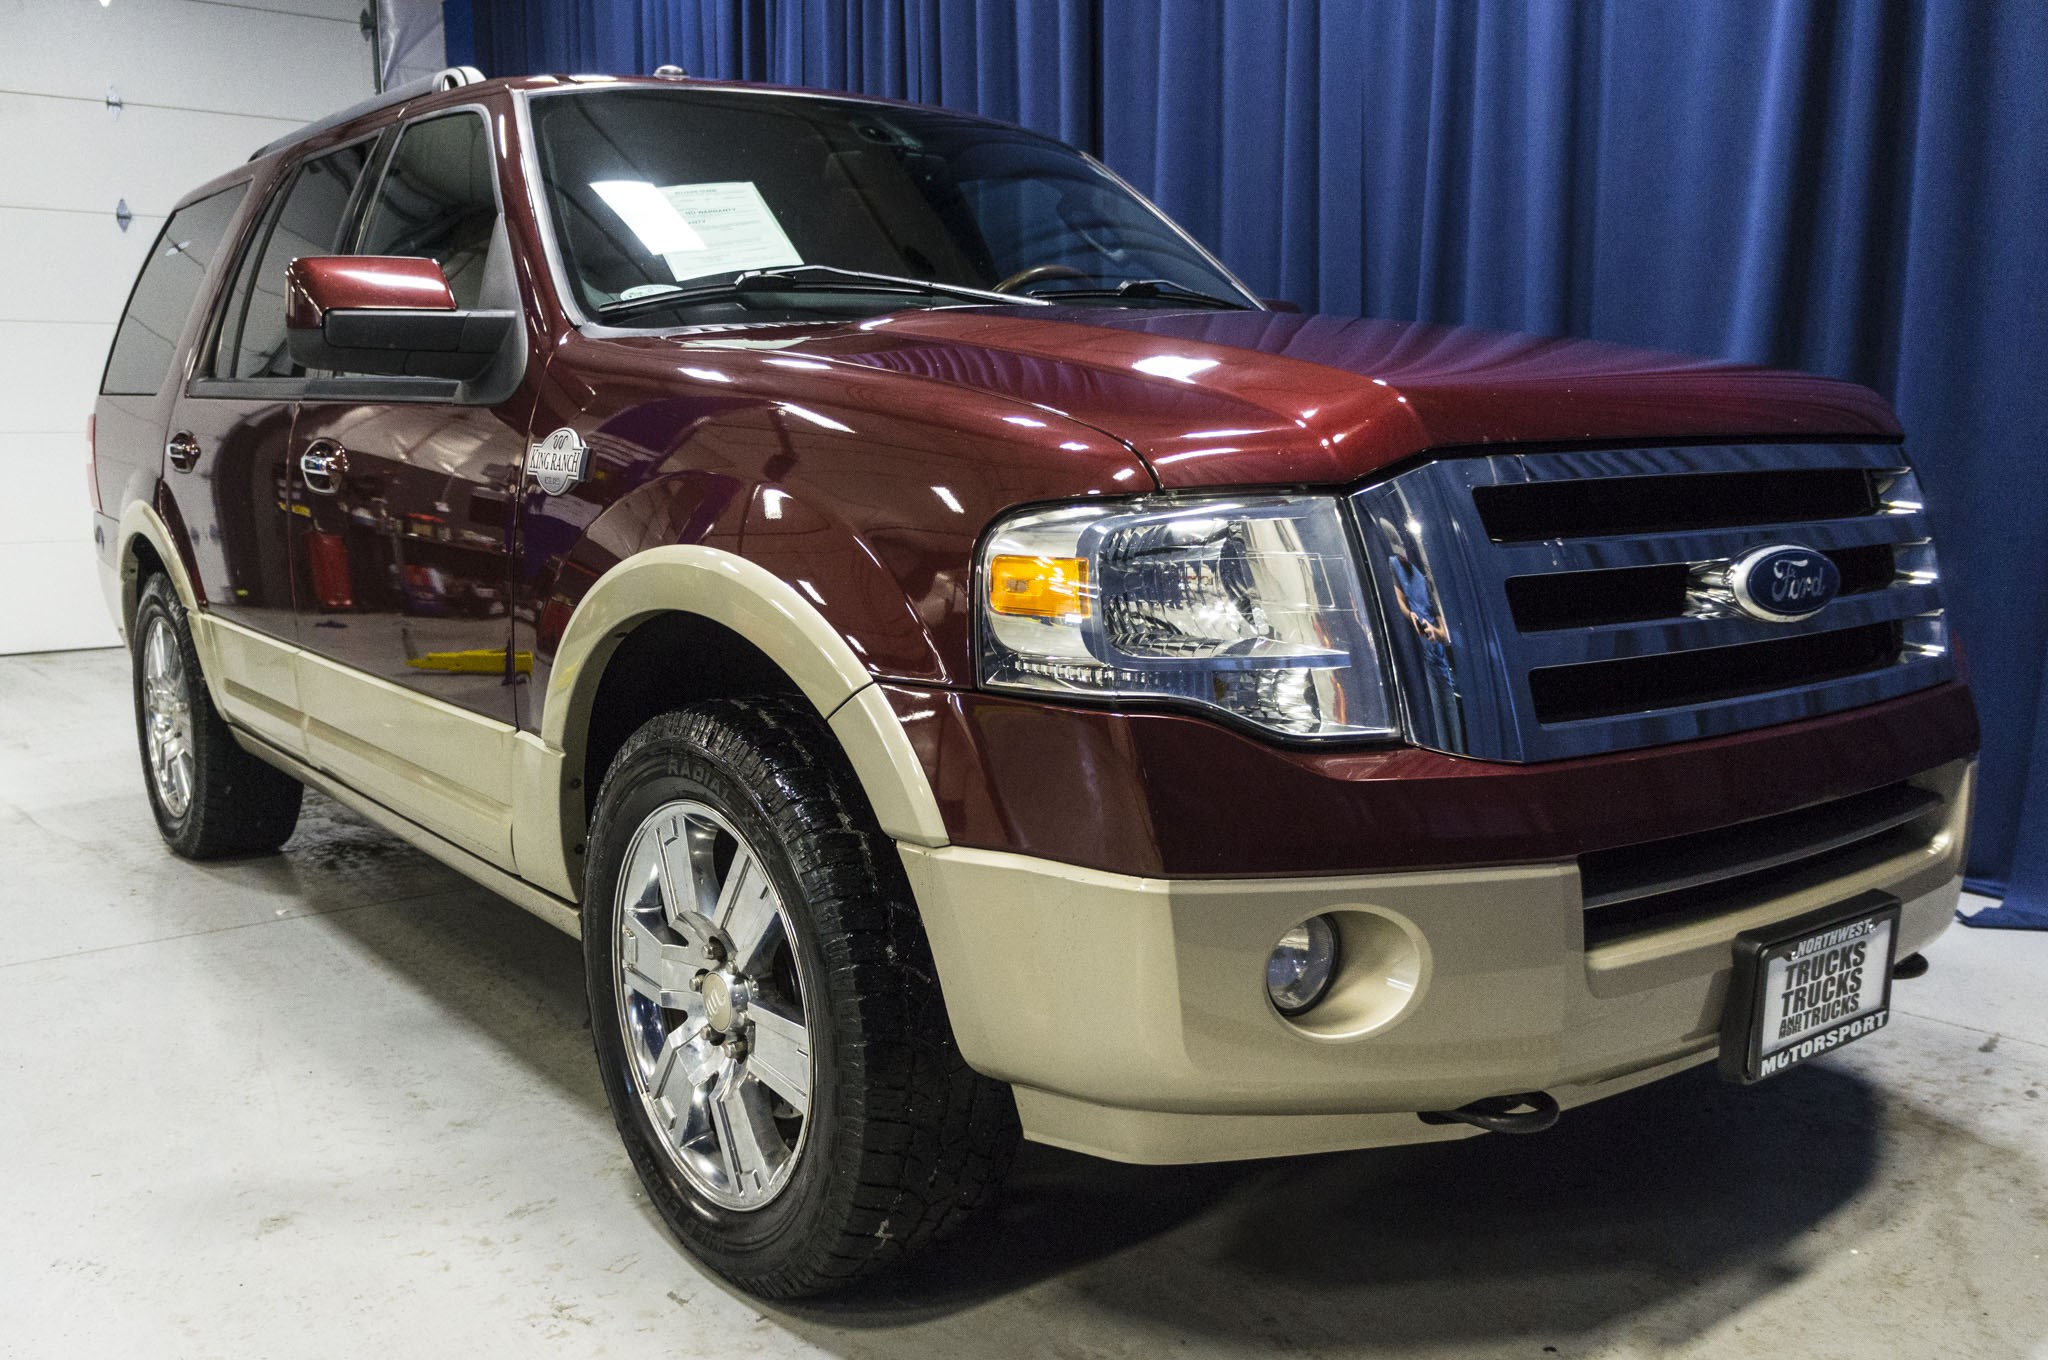 downloads ski ssv ford nypd expedition download quot cfgfactory show